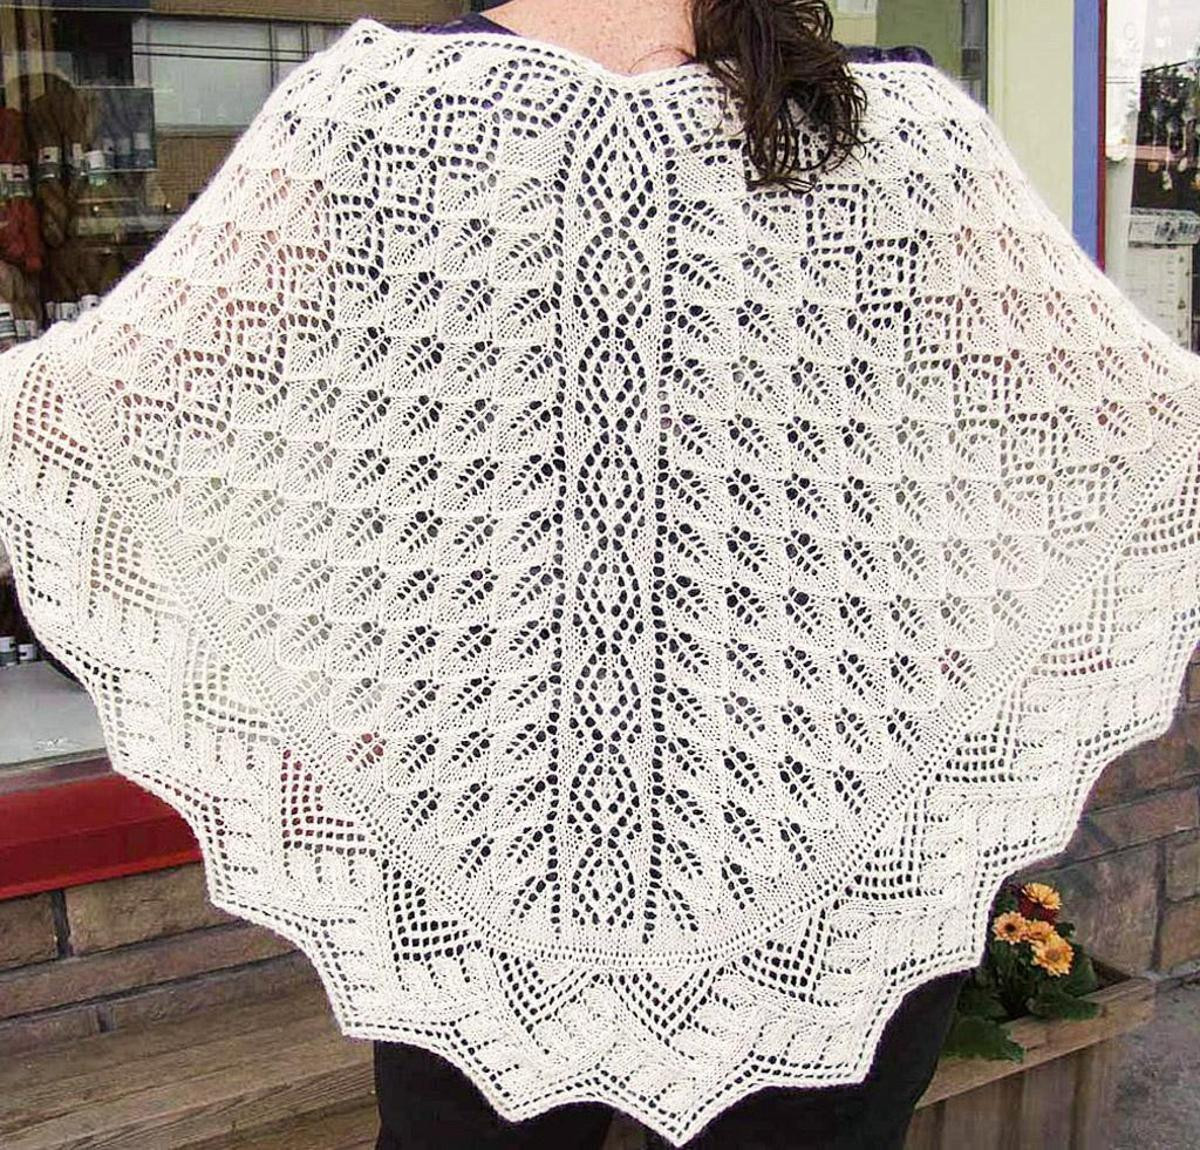 Best Of Harbour Lights Lace Shawl Knitting Kit Knit Lace Shawl Of Contemporary 41 Pics Knit Lace Shawl